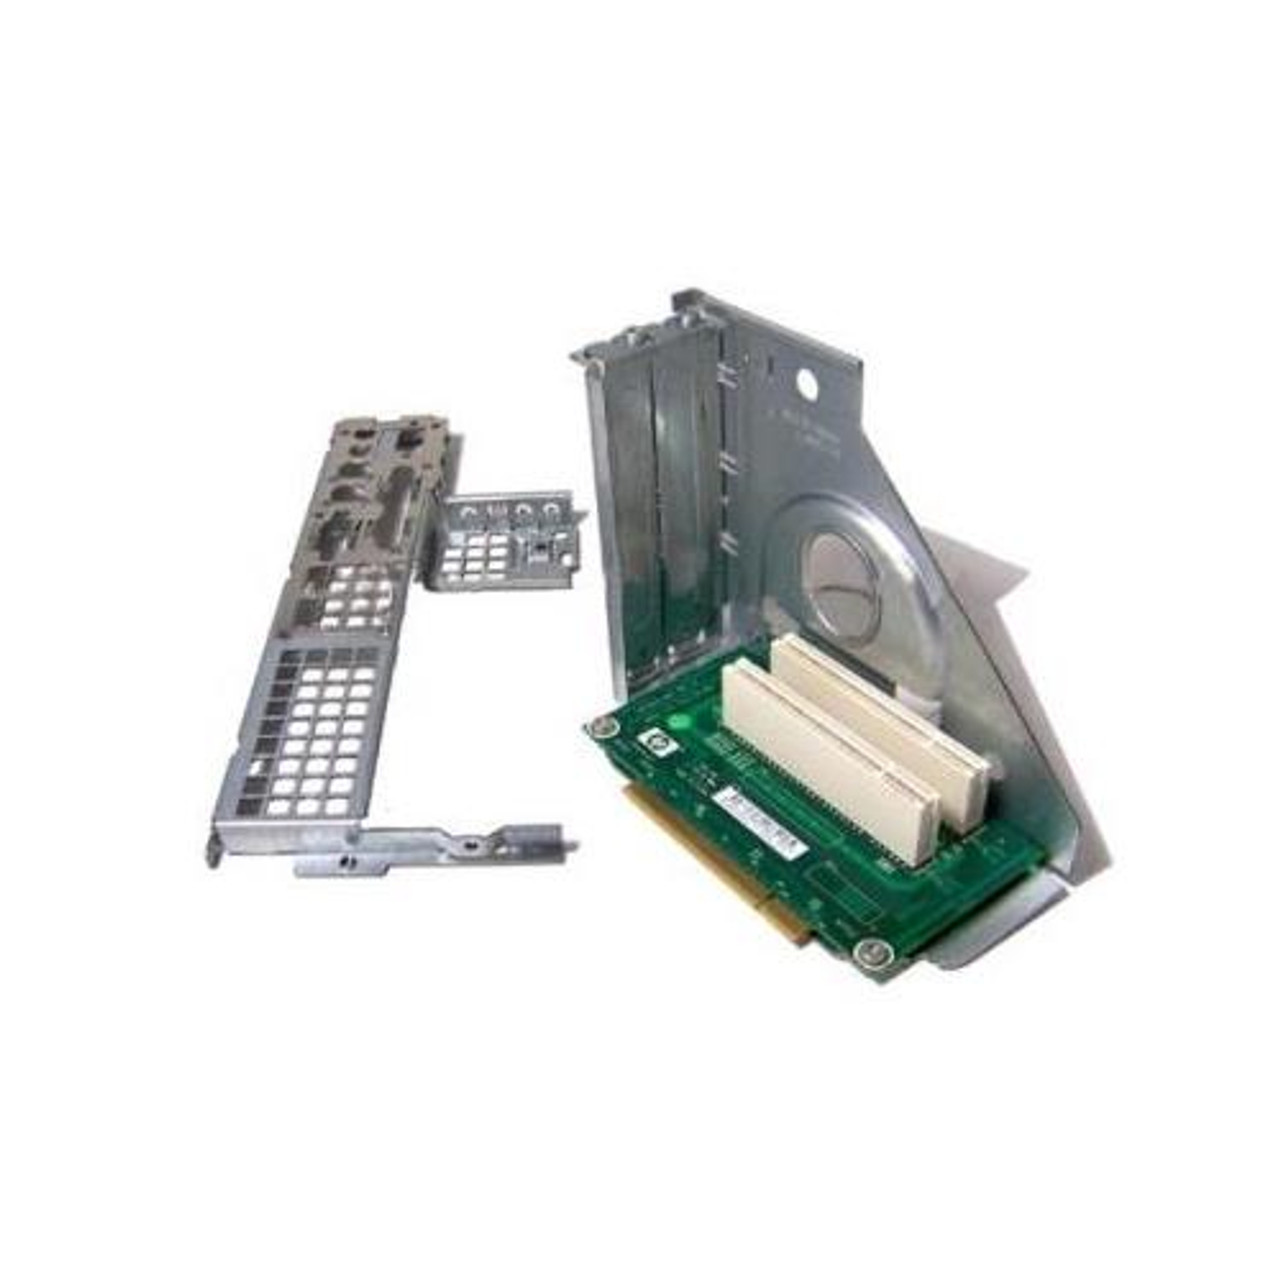 RJ-45 Digi DC-SP-01-S Connect SP Device Server 1 x Network - 1 x Serial Port Desktop Fast Ethernet